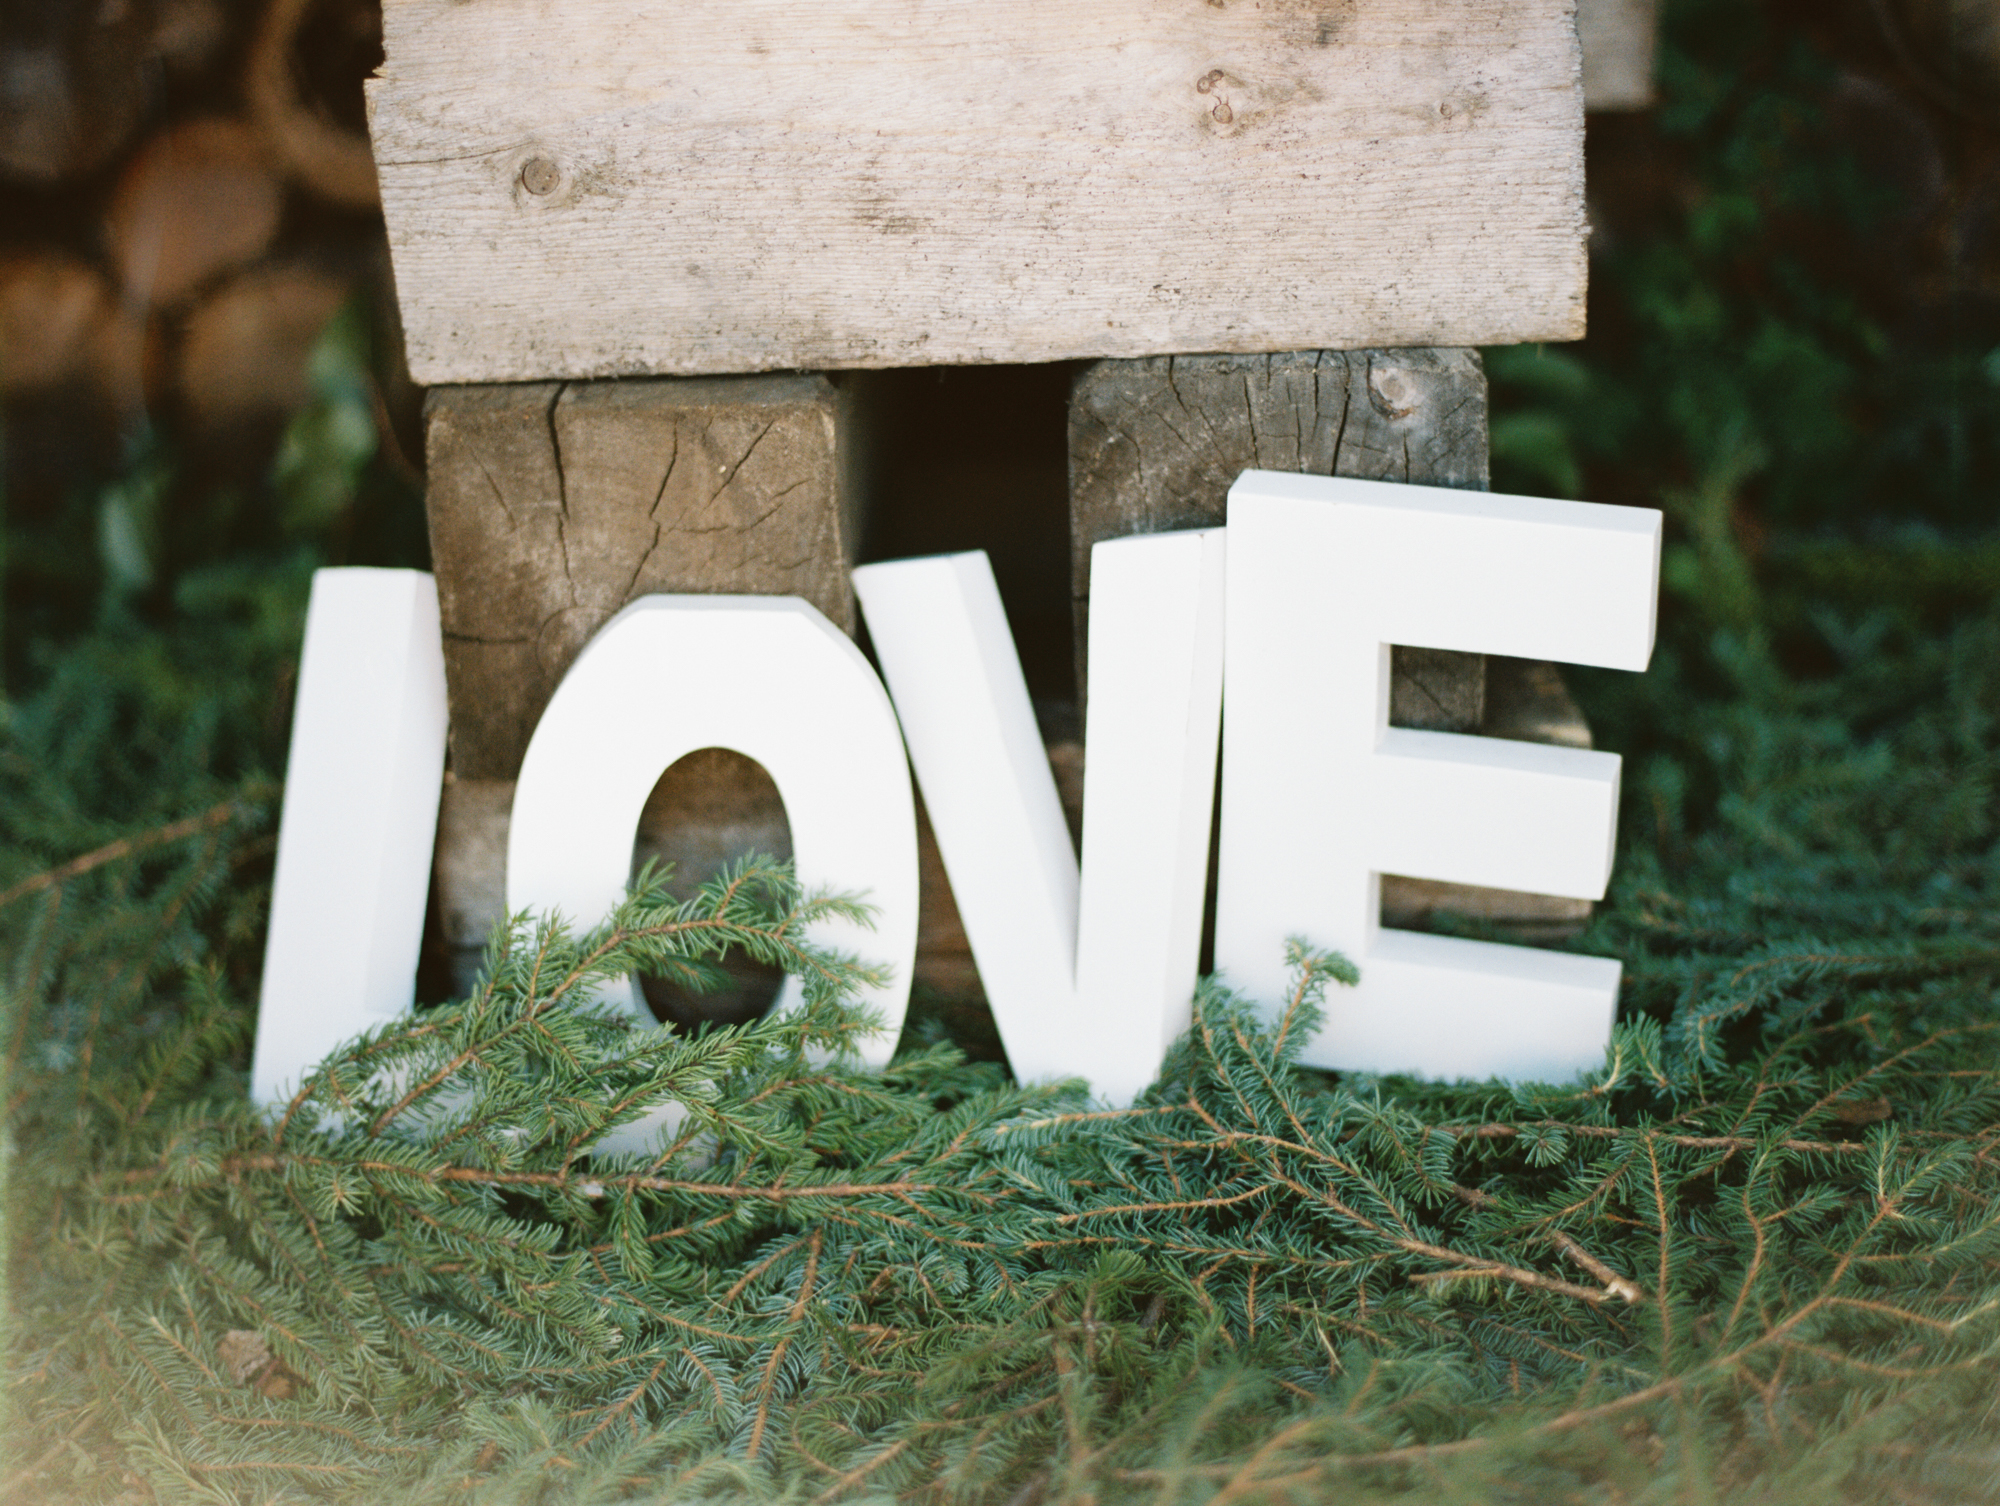 LOVE text set on green tree branches, part of the wedding decorations